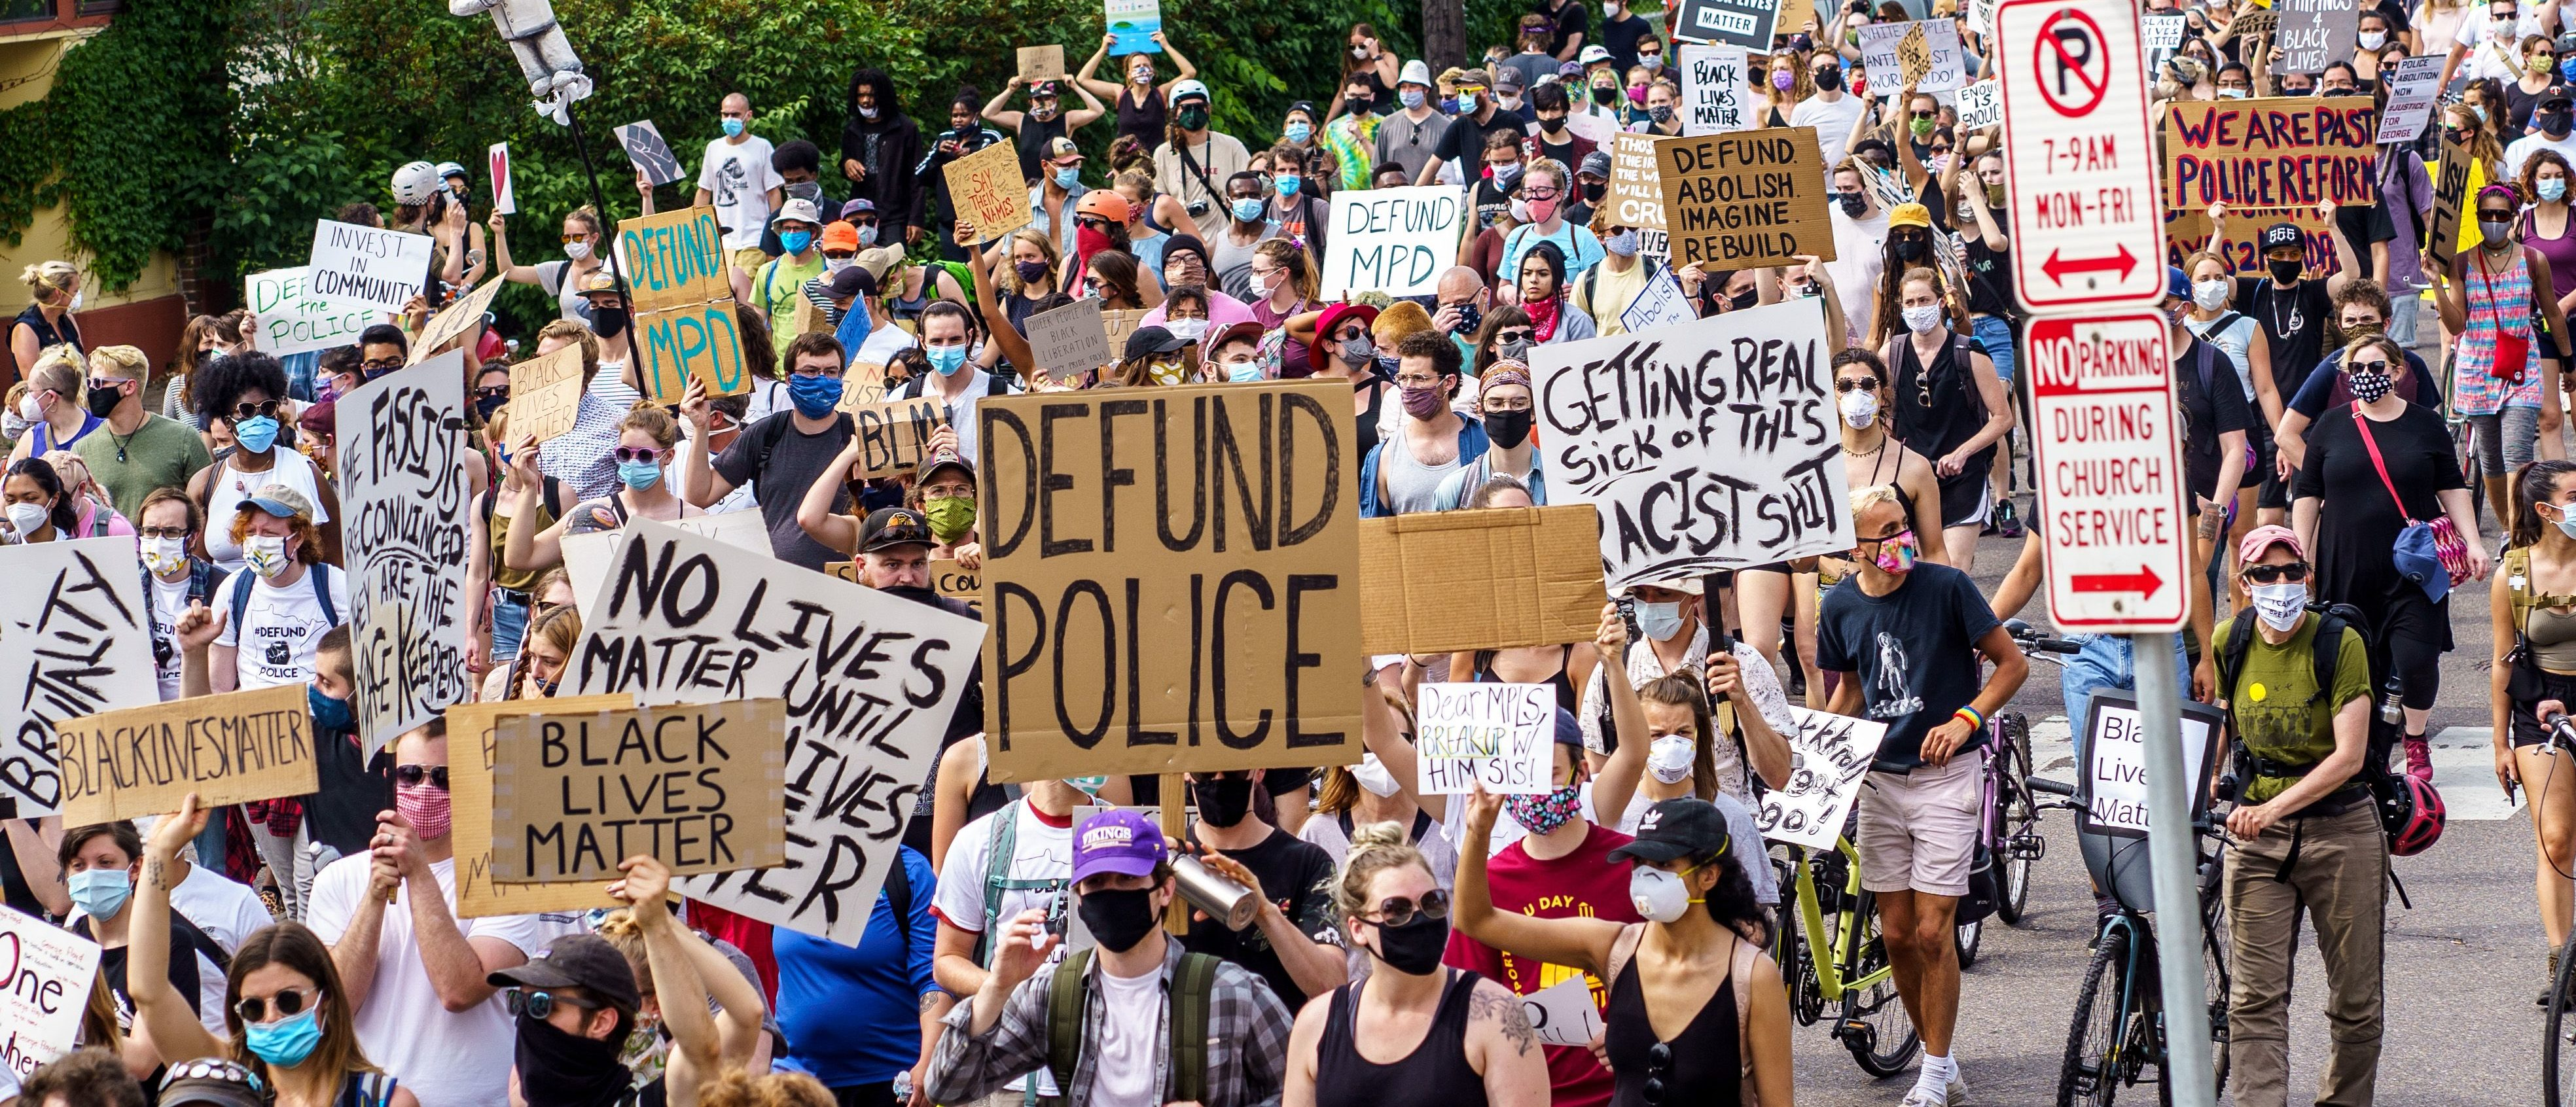 Demonstrators march against racism and police brutality and to defund the Minneapolis Police Department on June 6, 2020 in Minneapolis, Minnesota. - Demonstrations are being held across the US following the death of George Floyd on May 25, 2020, while being arrested in Minneapolis, Minnesota. (Photo by kerem yucel / AFP) (Photo by KEREM YUCEL/AFP via Getty Images)